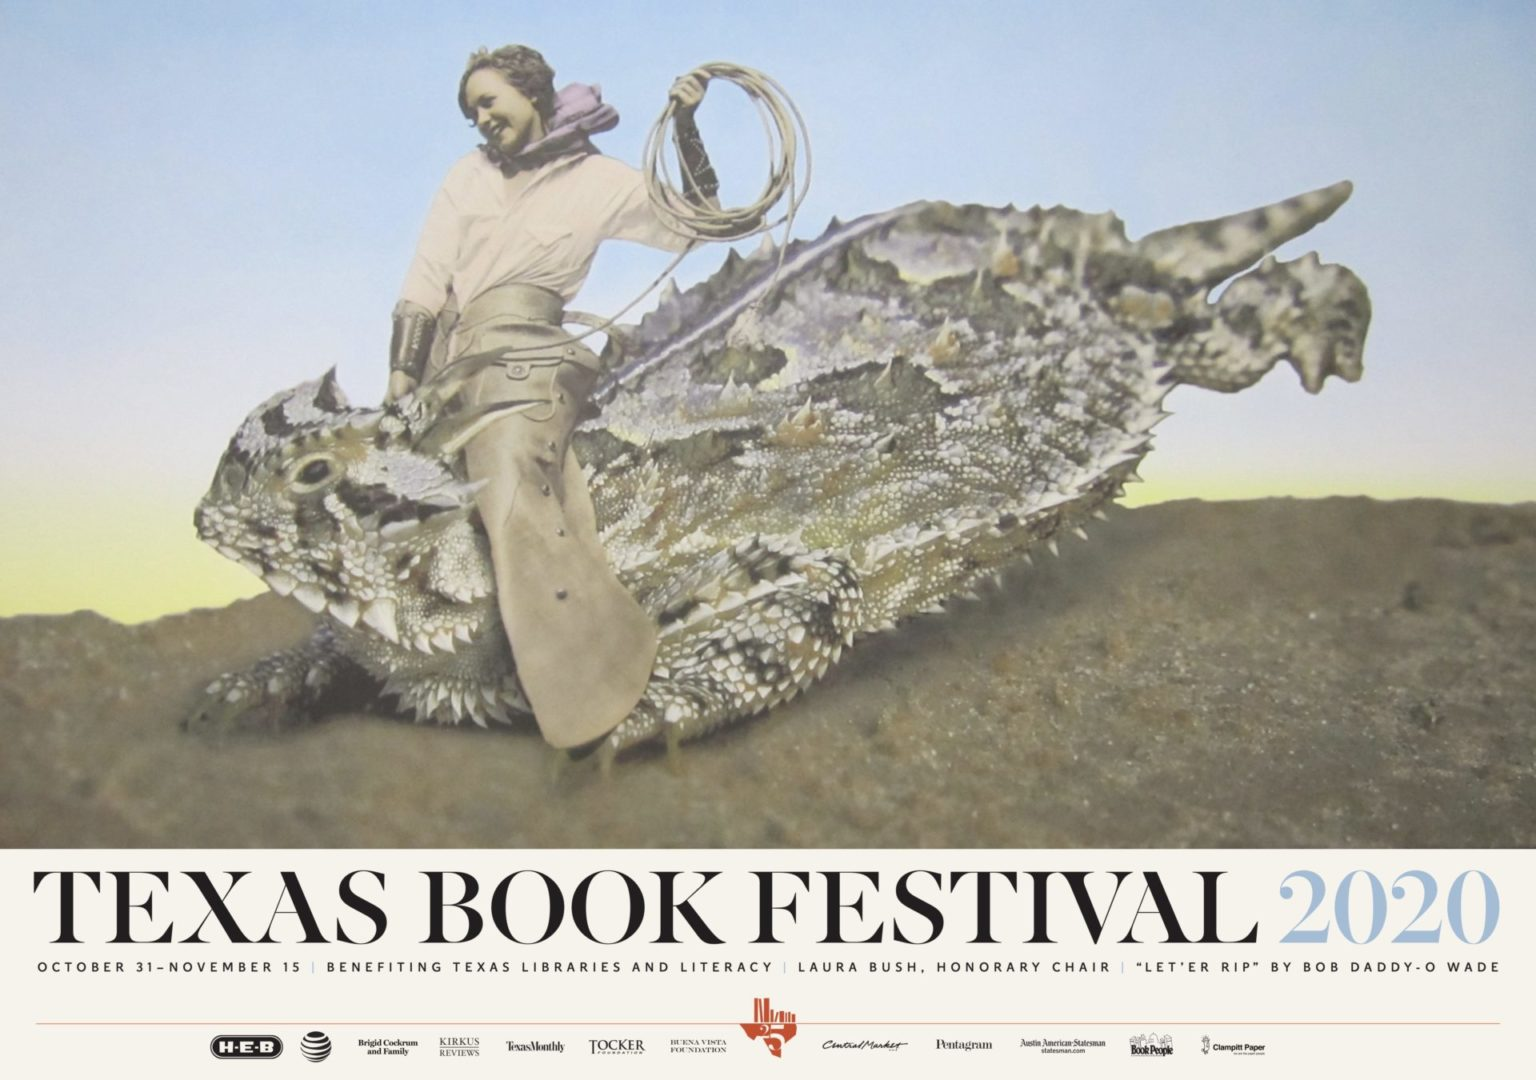 Fire Truck vs. Dragon is coming to the 2020 Texas Book Festival!